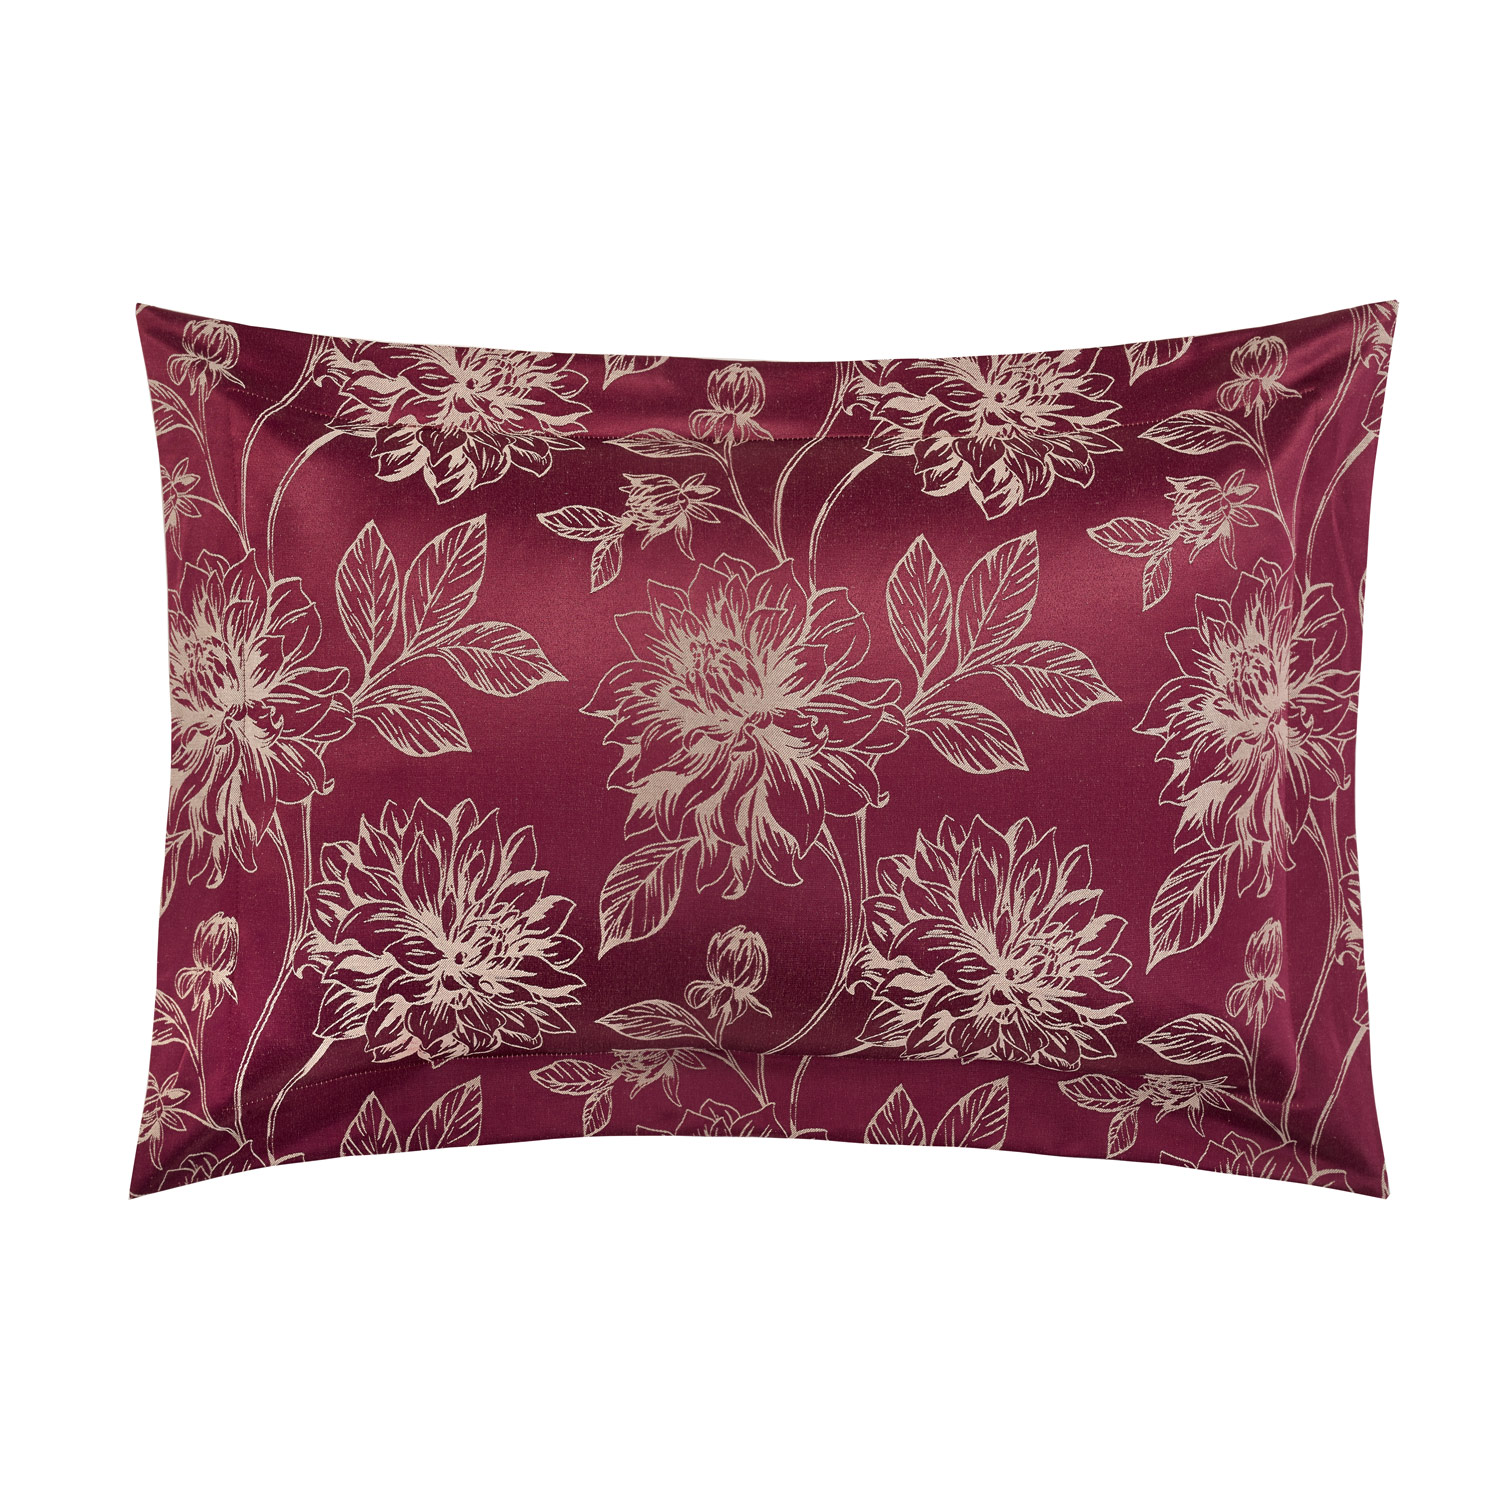 Annabelle Raspberry Oxford Pillow Cases (Pair)